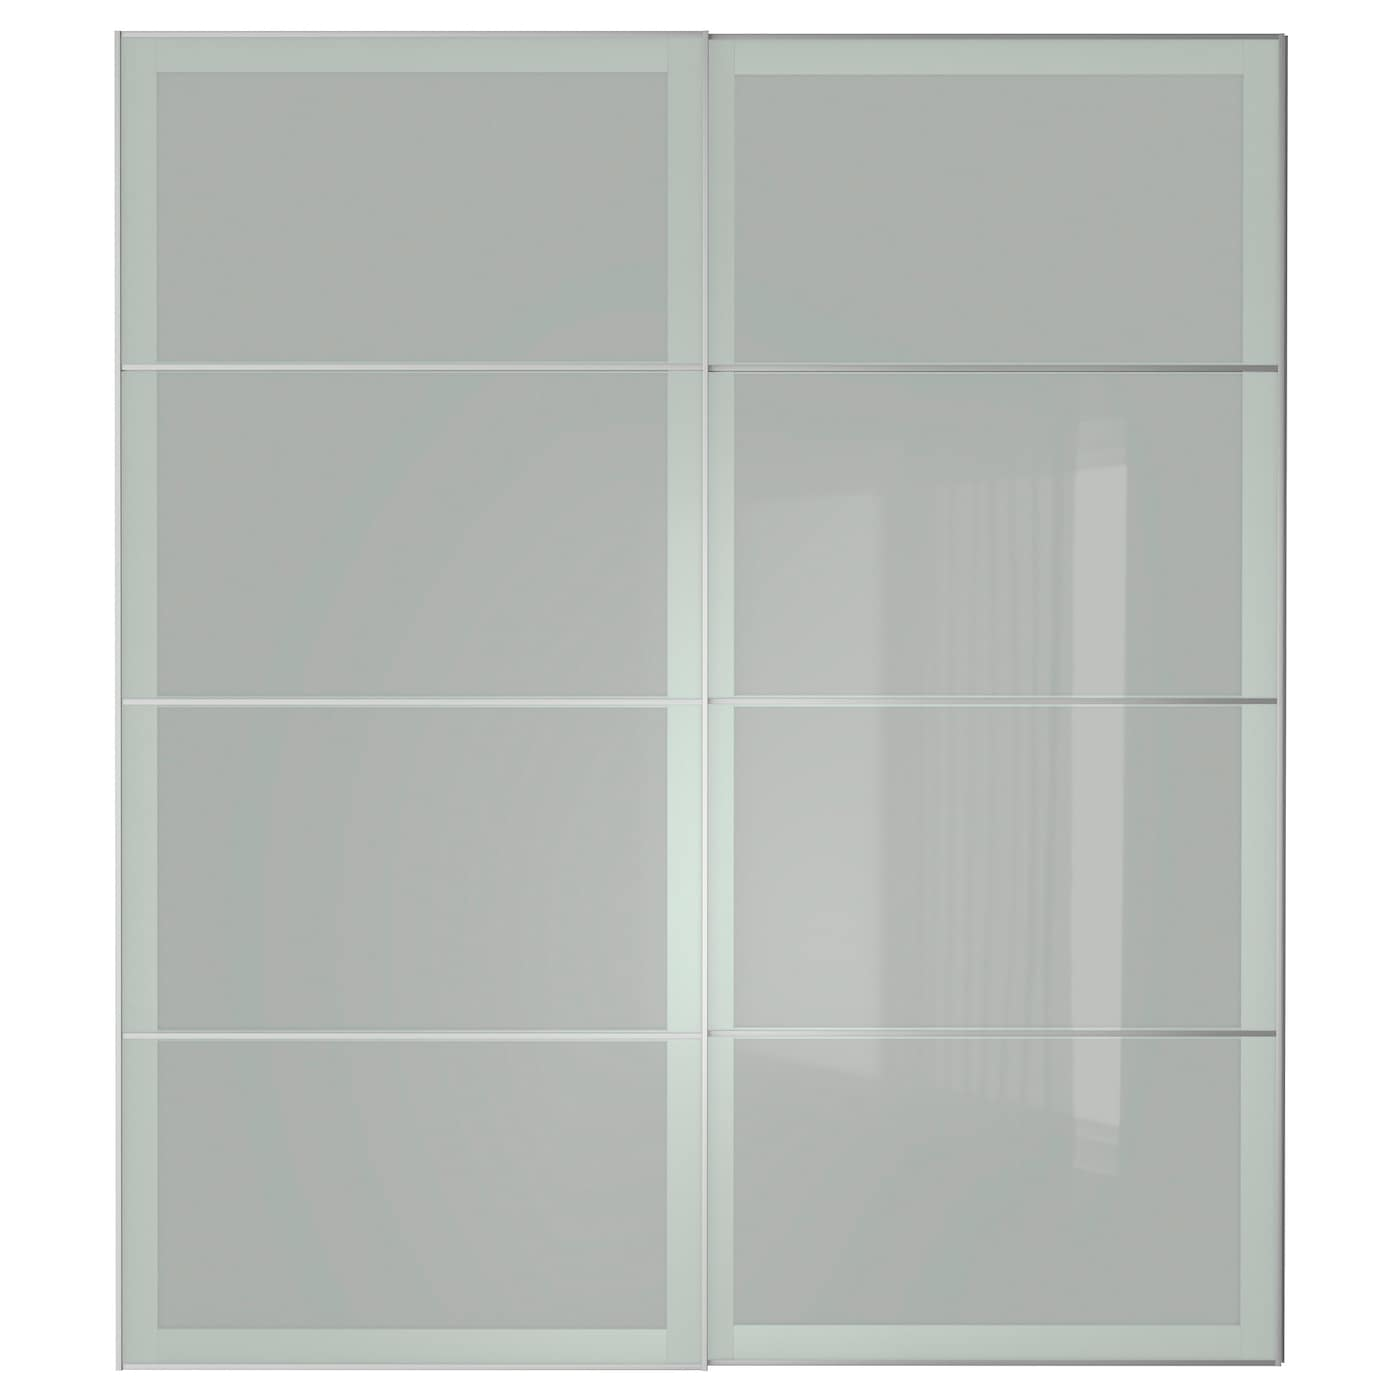 Schwebetürenschrank ikea pax  SEKKEN Pair of sliding doors Frosted glass 200x236 cm - IKEA